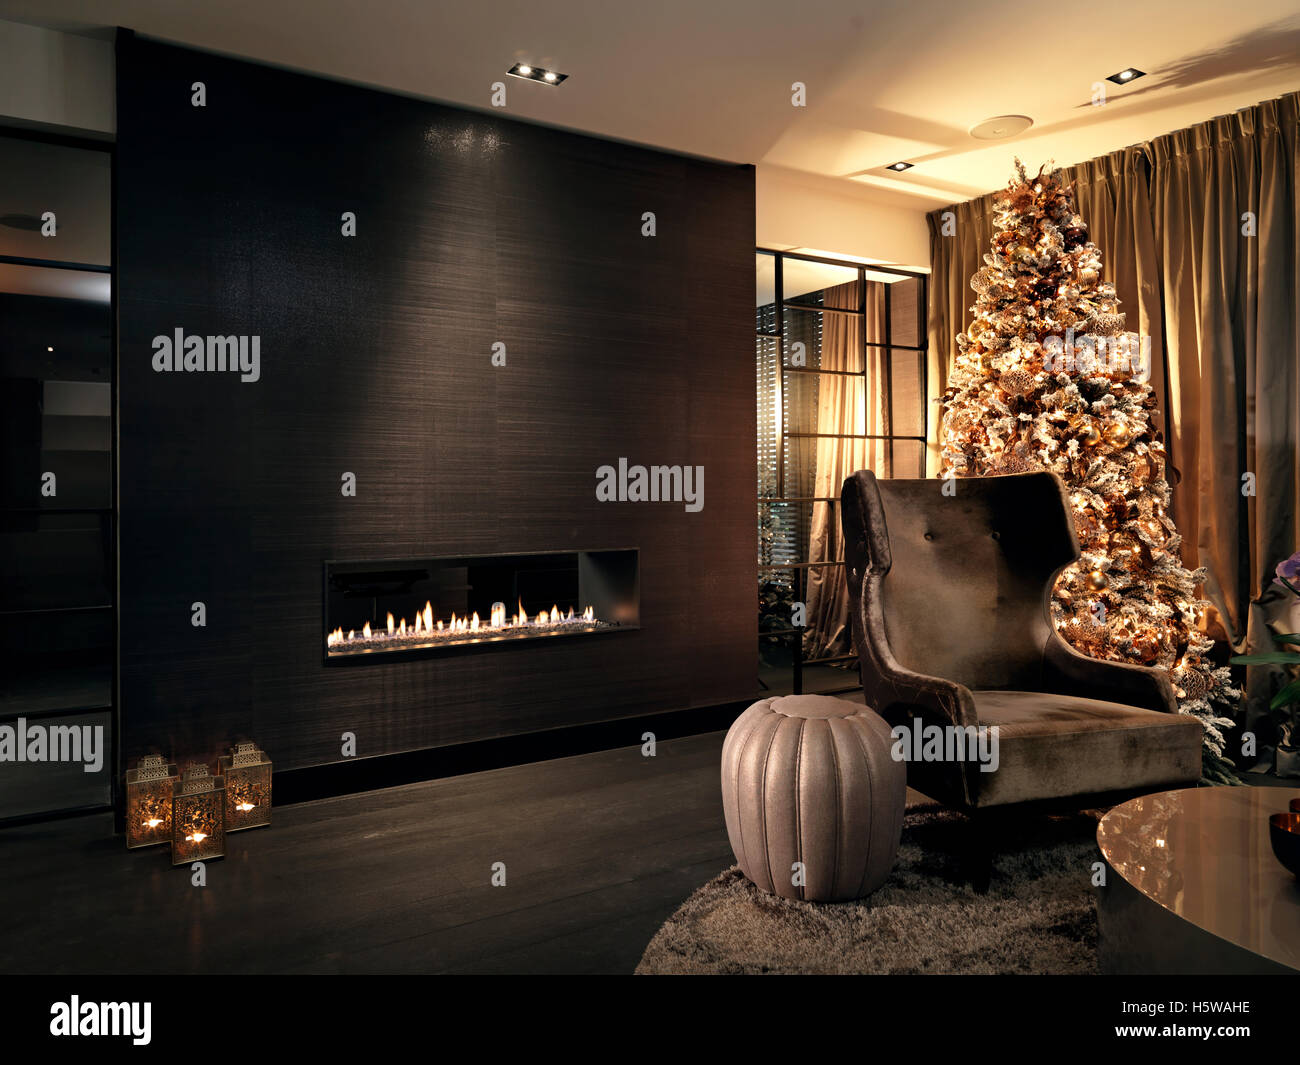 Christmas tree in livingroom with fireplace - Stock Image